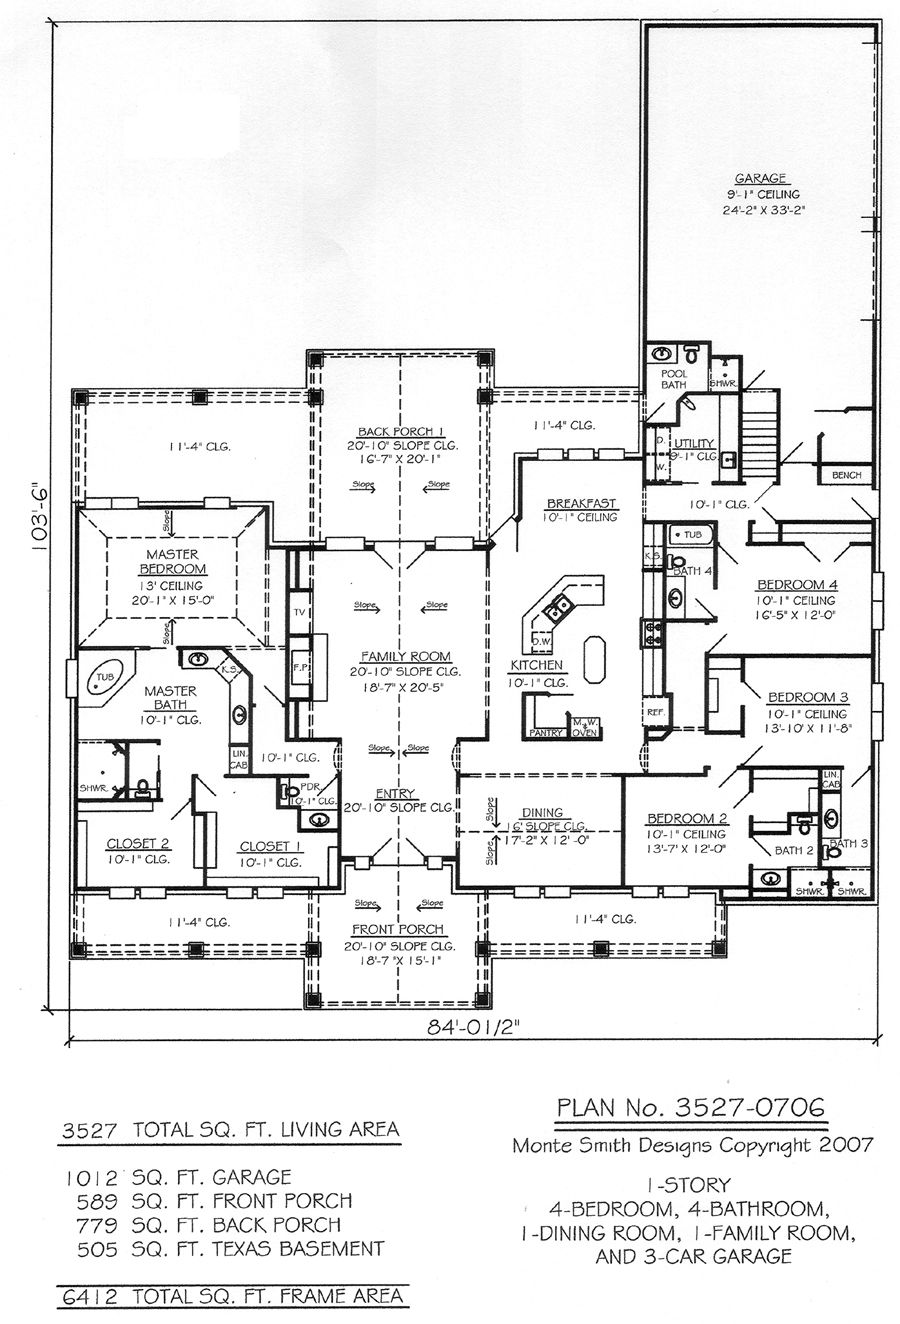 Remove Bath Next To Bed 4 Turn Into 2 Rooms. Playroom And Office. Put Jack  N Jill Btwn Bdrm W N 3. Plan No. 3527 0706